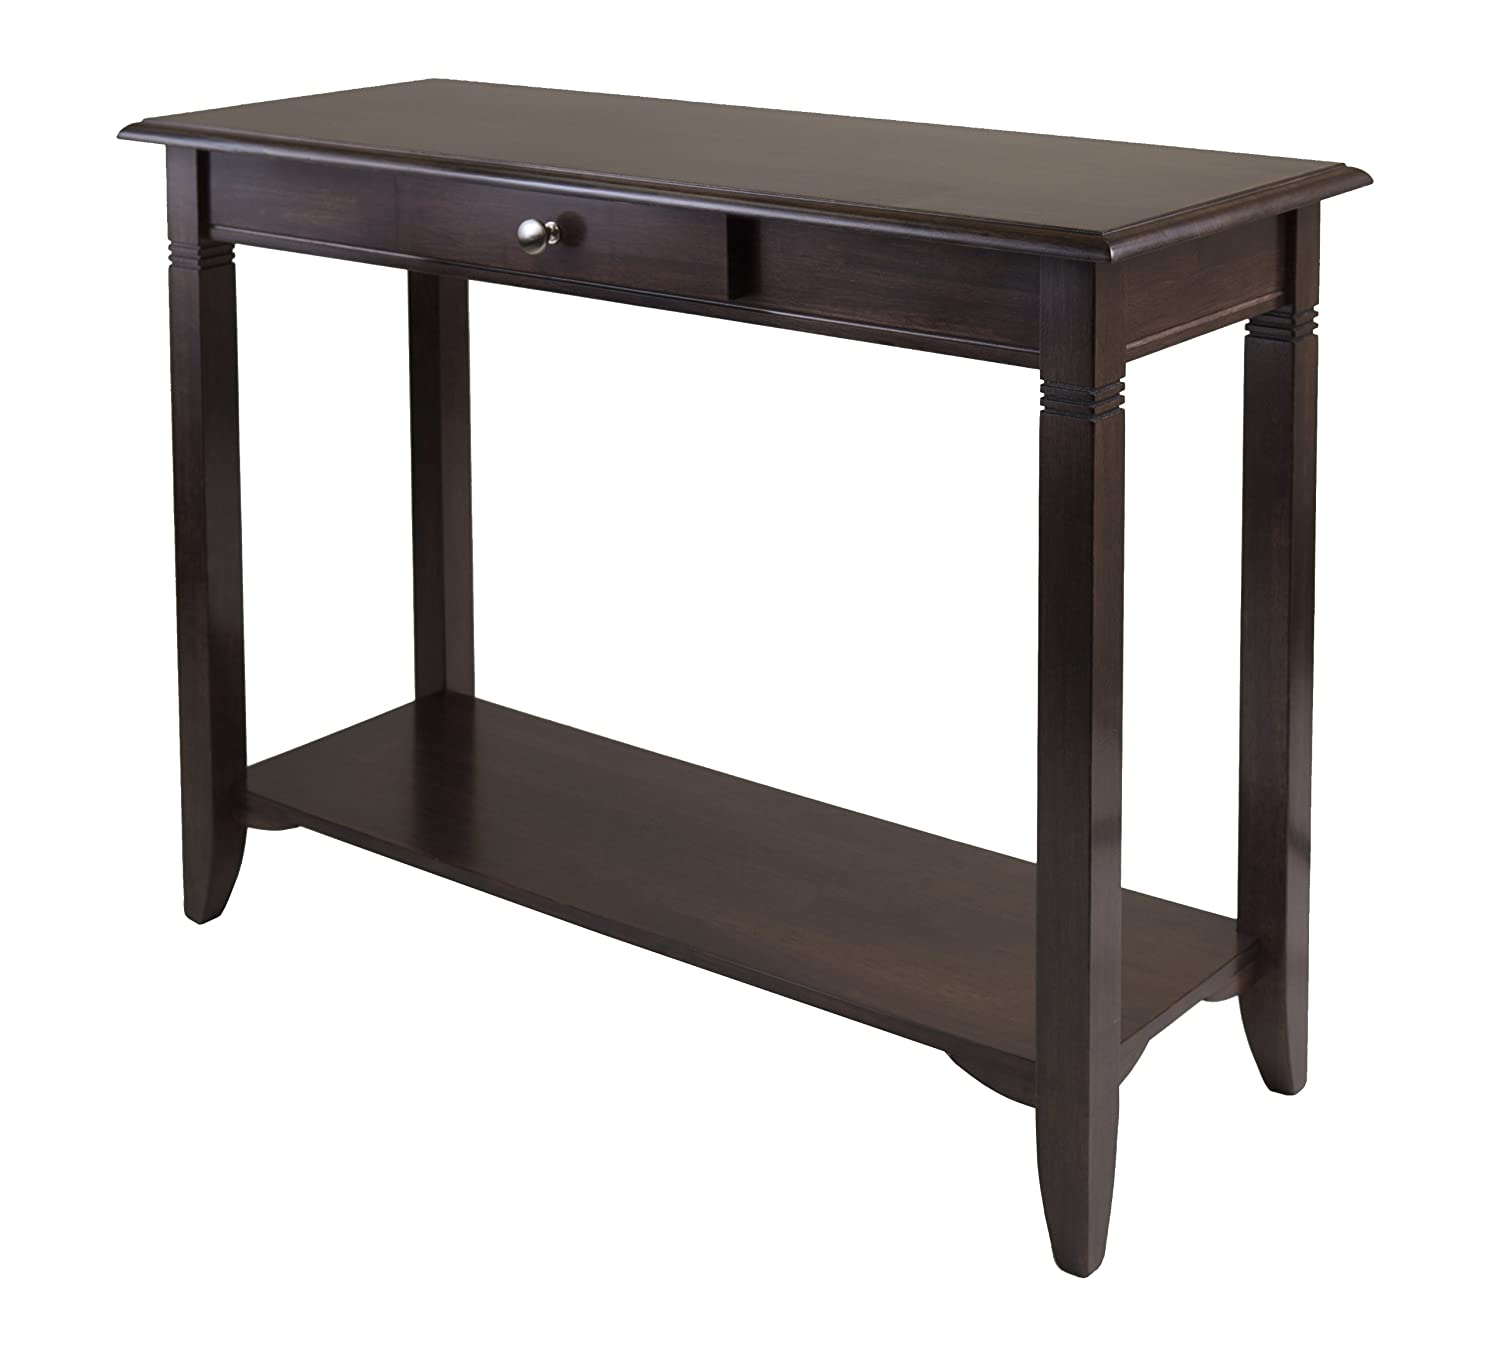 sc 1 st  Amazon.com & Amazon.com: Winsome Nolan Console Table with Drawer: Kitchen u0026 Dining